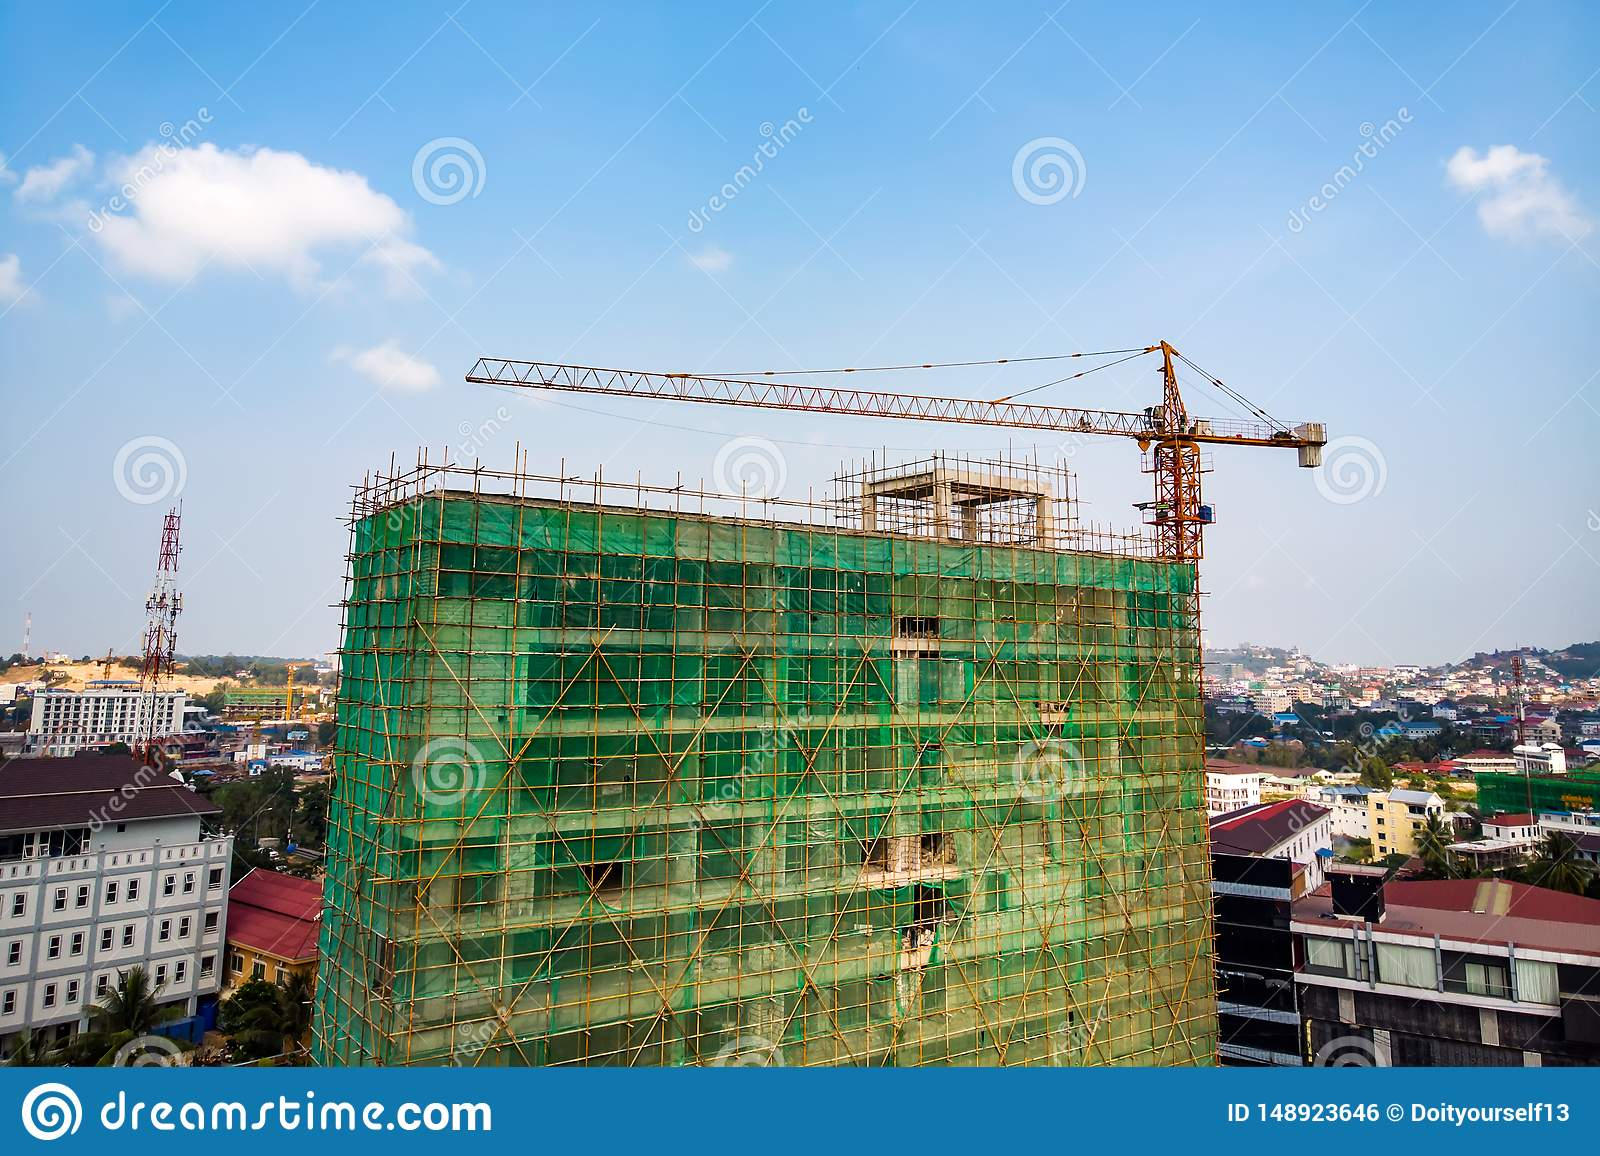 Construction site next to modern office, residential building. Working crane and safety net with cloud blue sky . Green grid